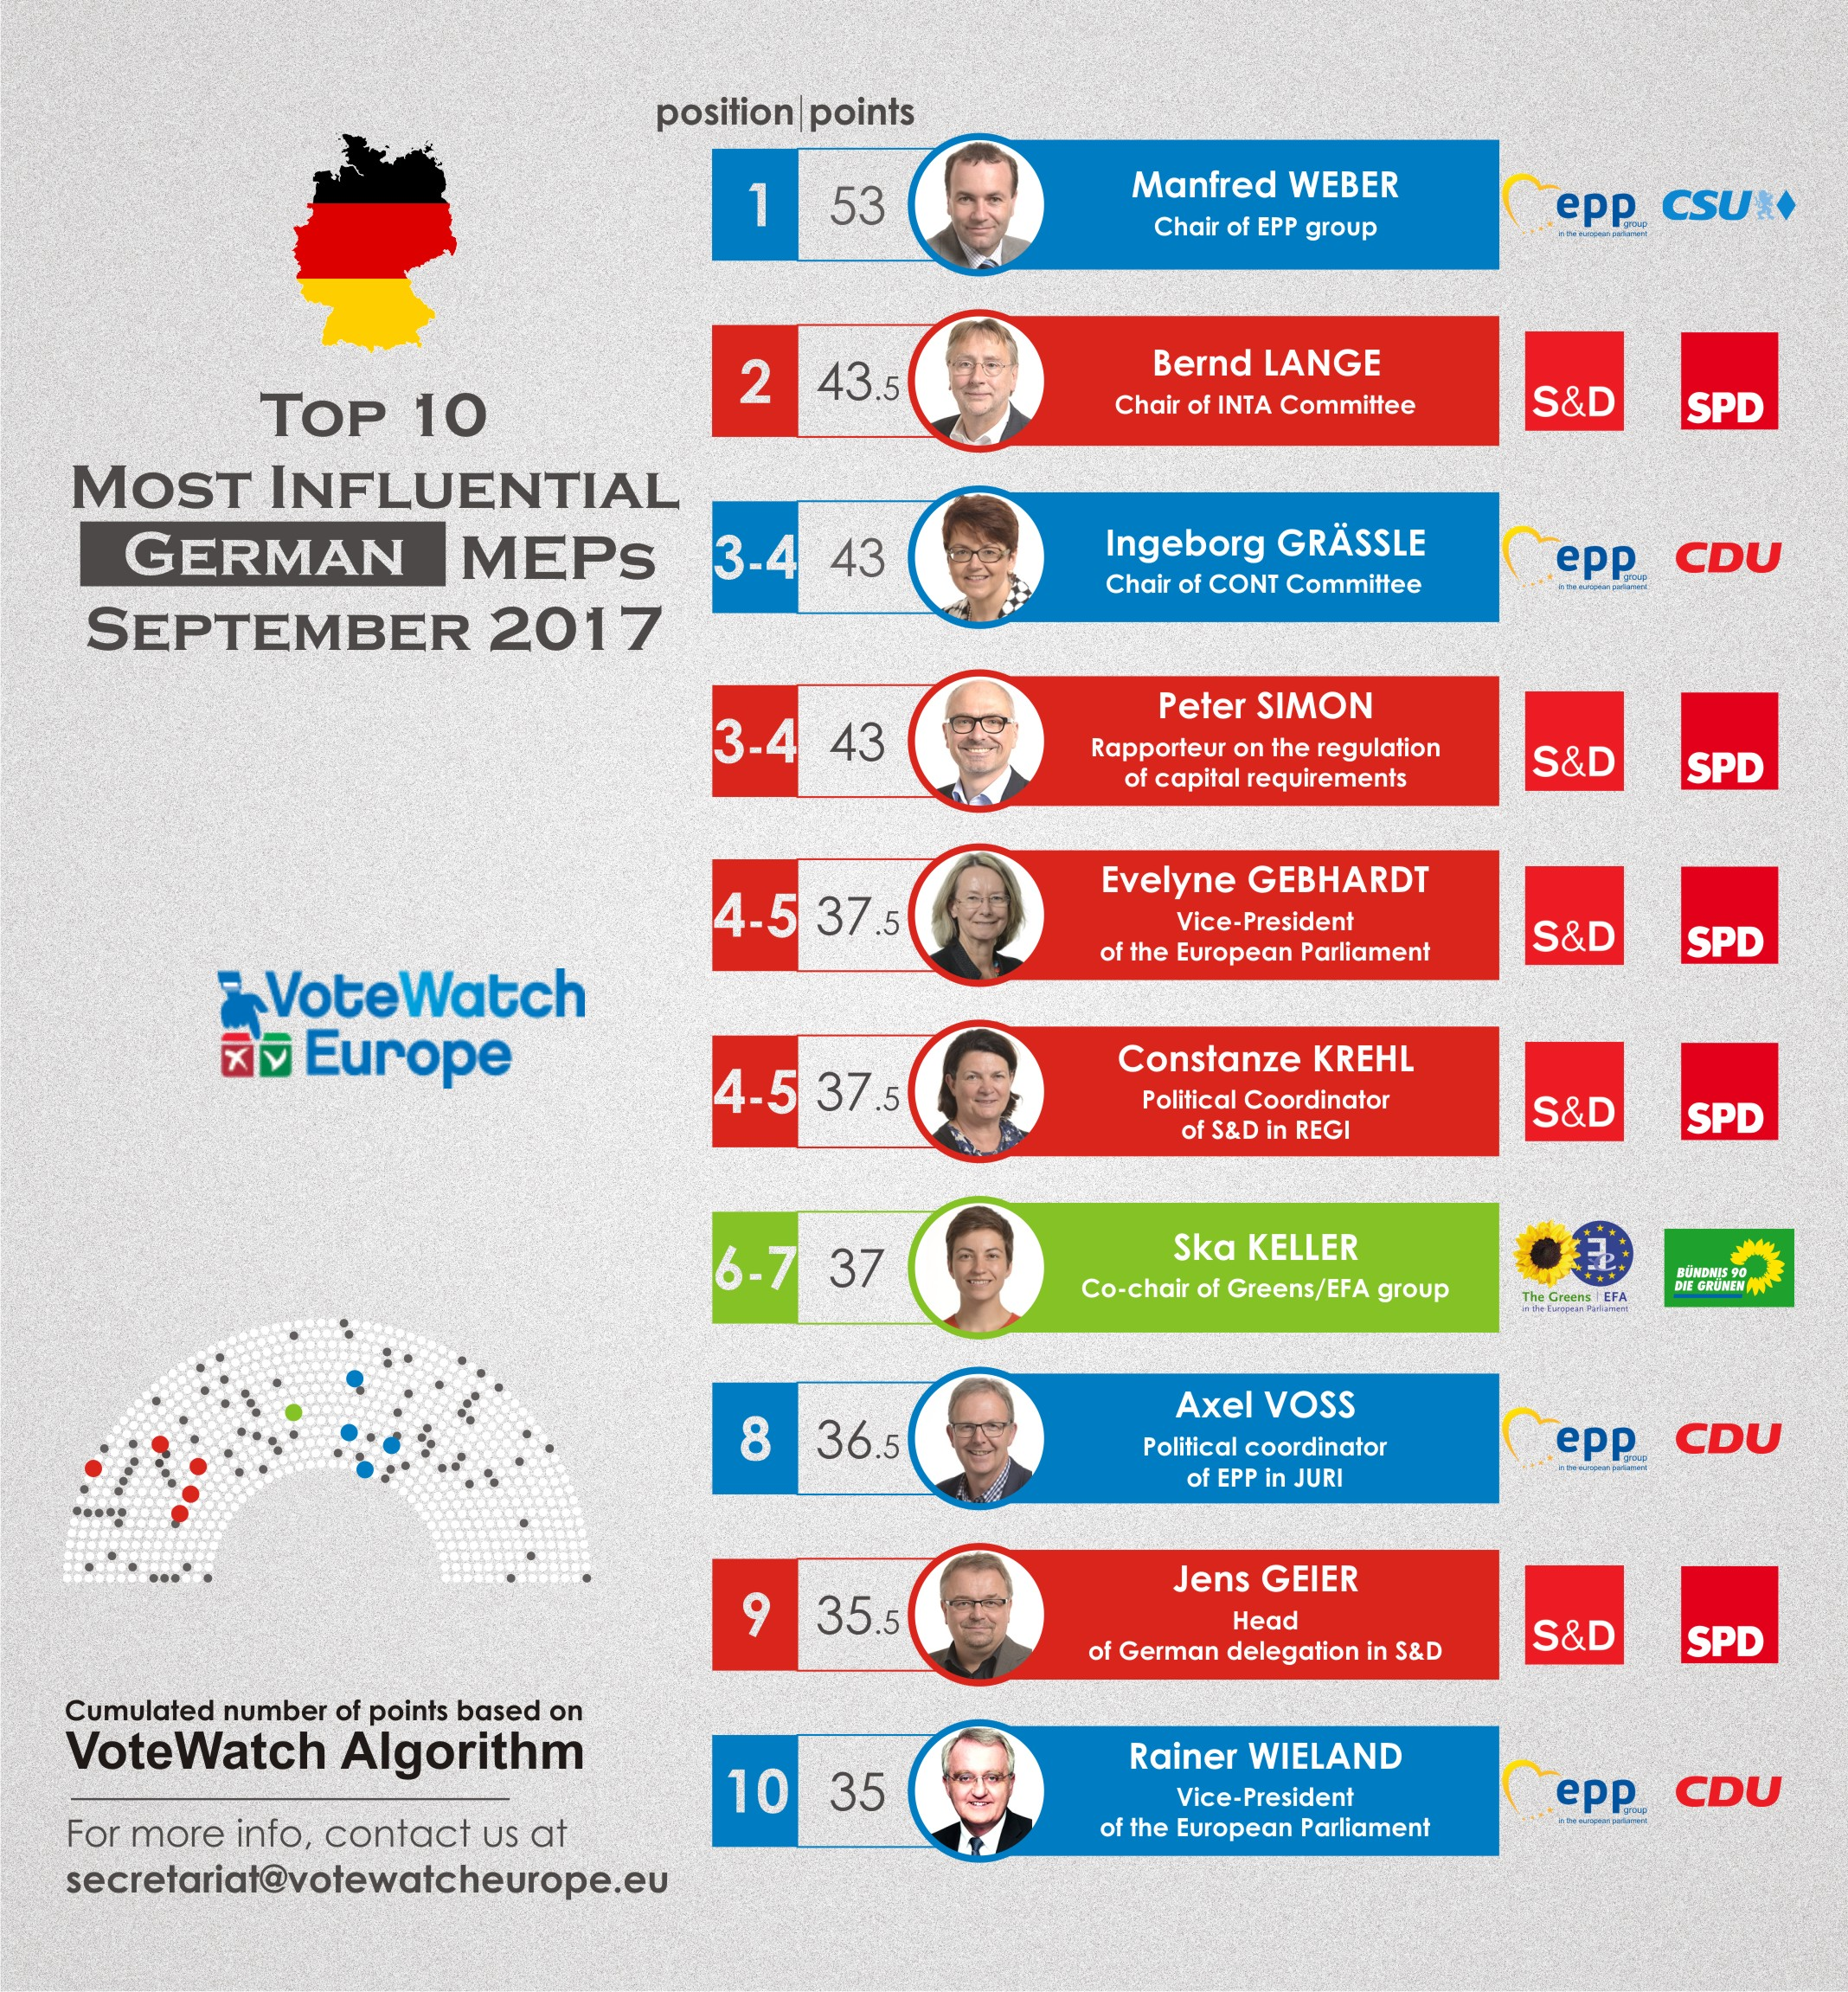 PJvw62 MEPs 2017 Germany (2)